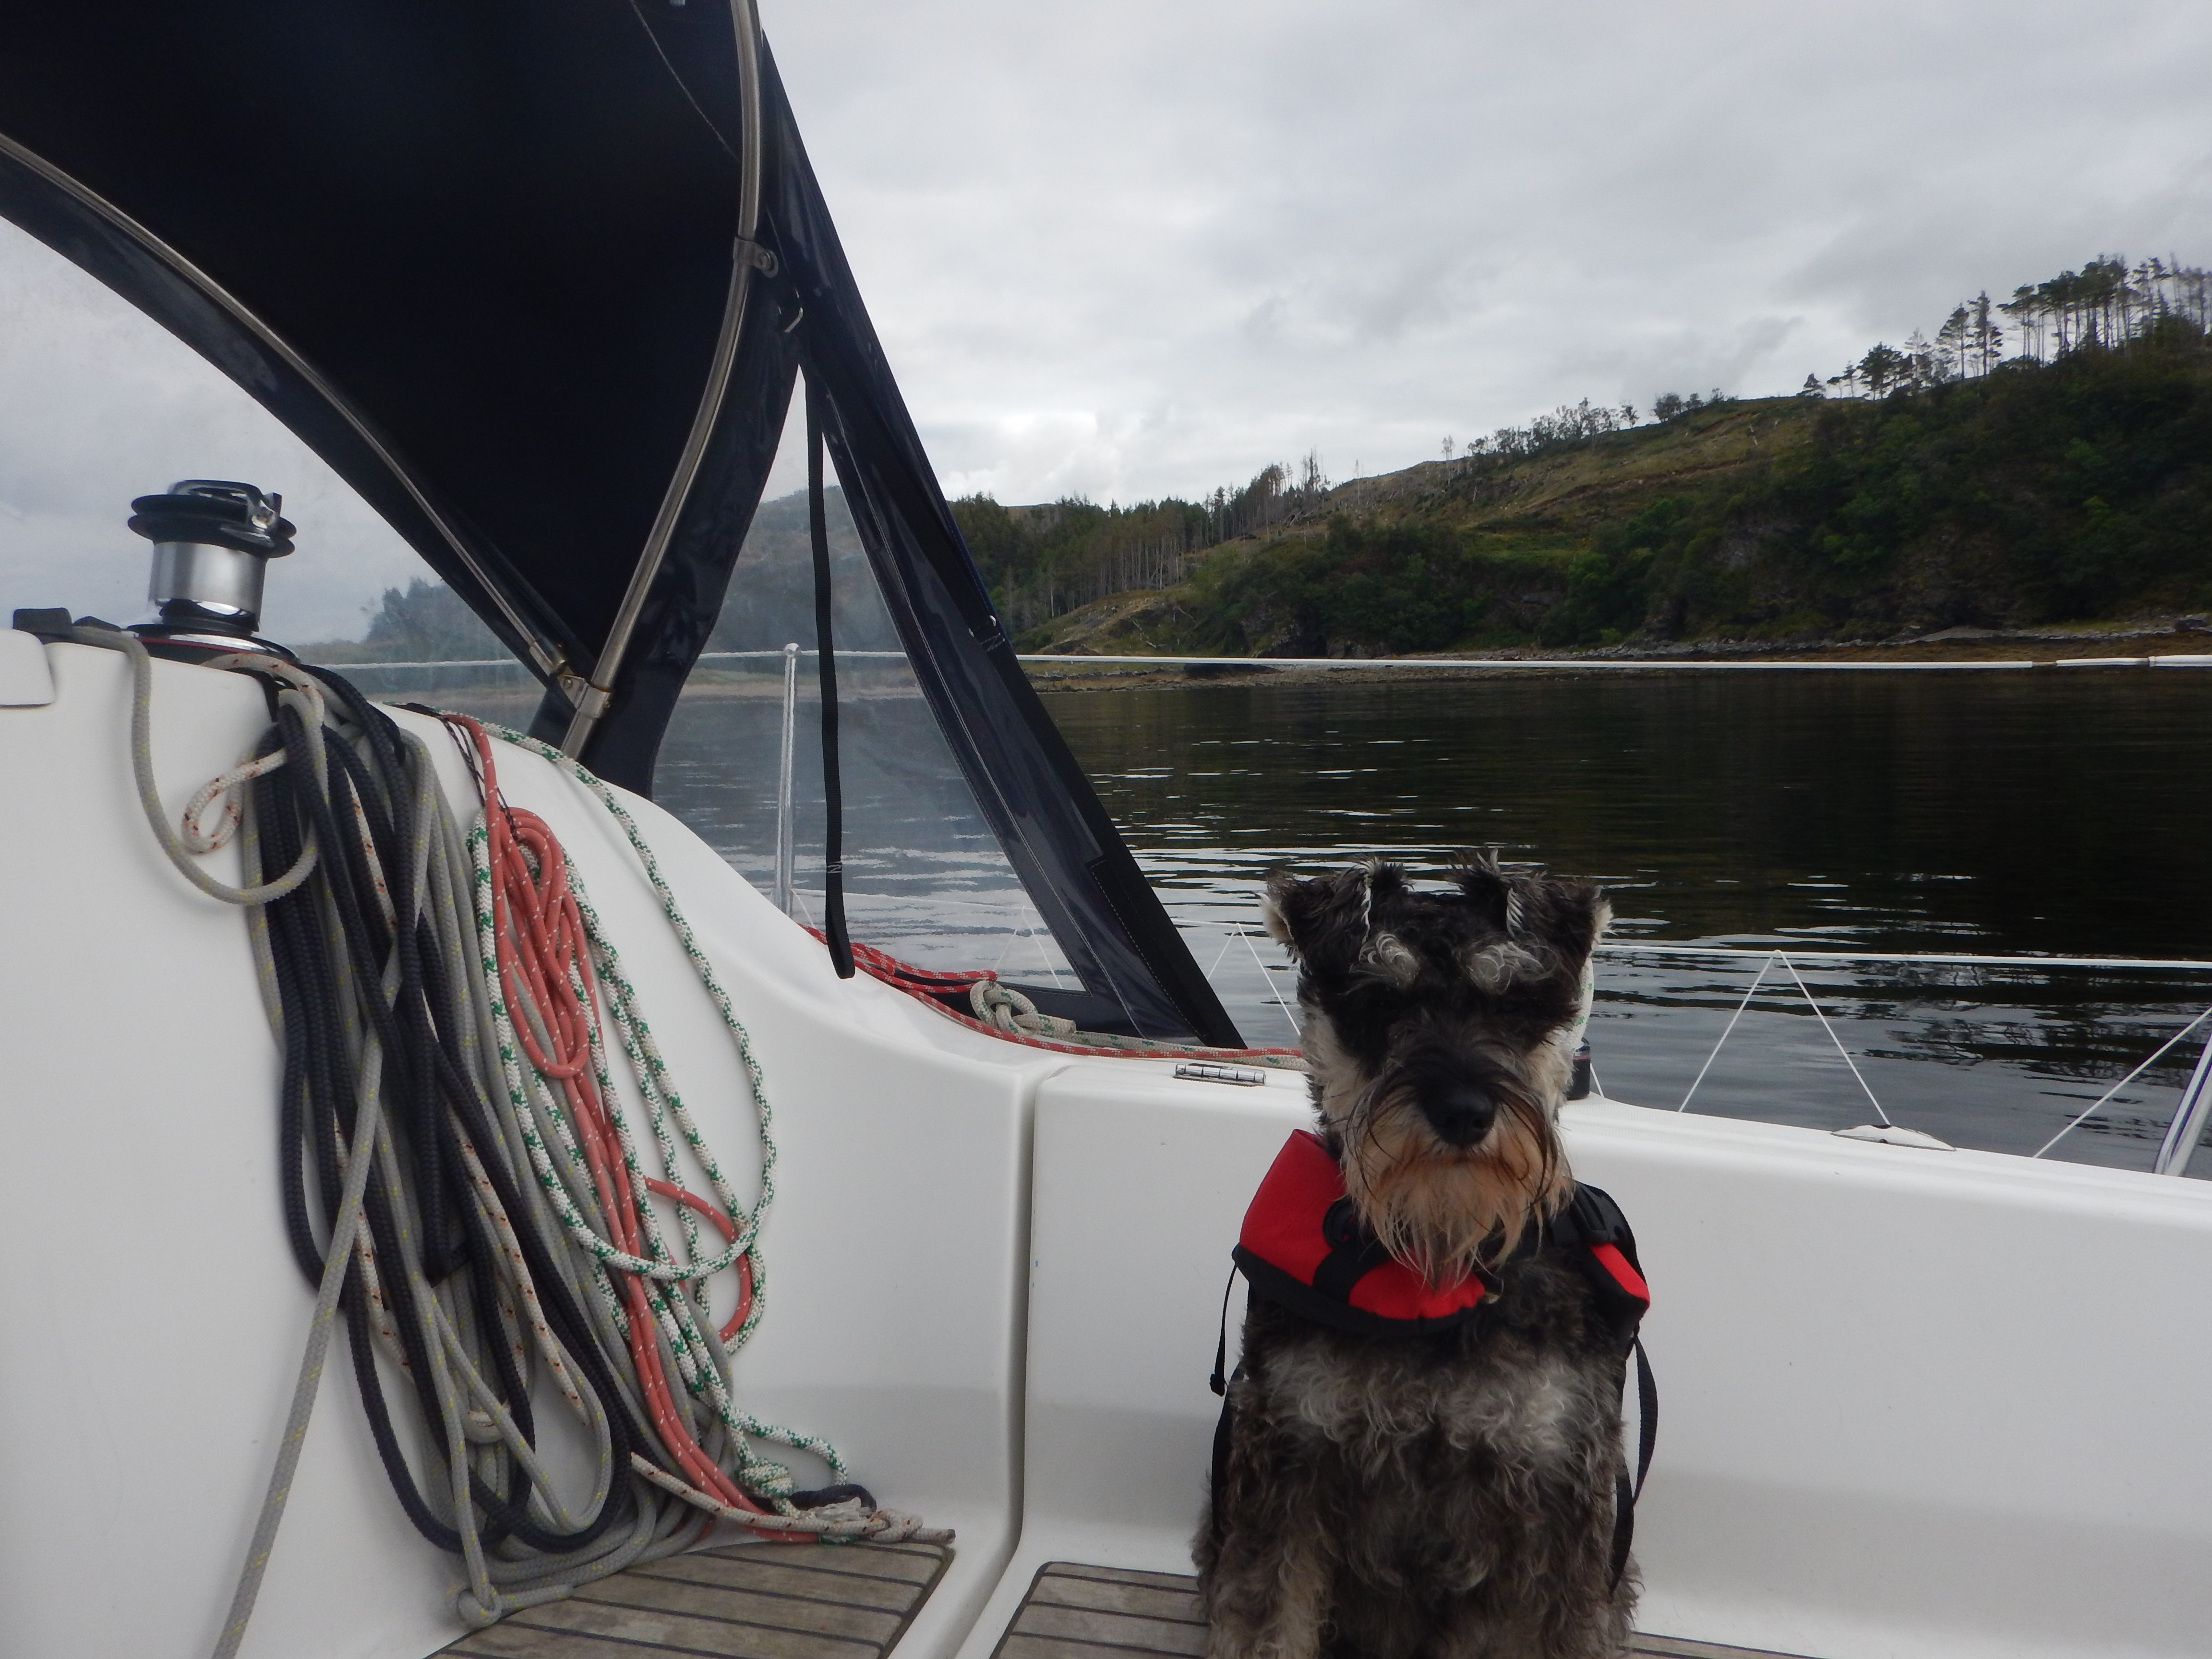 Dog, Boat and Scotland in landscape